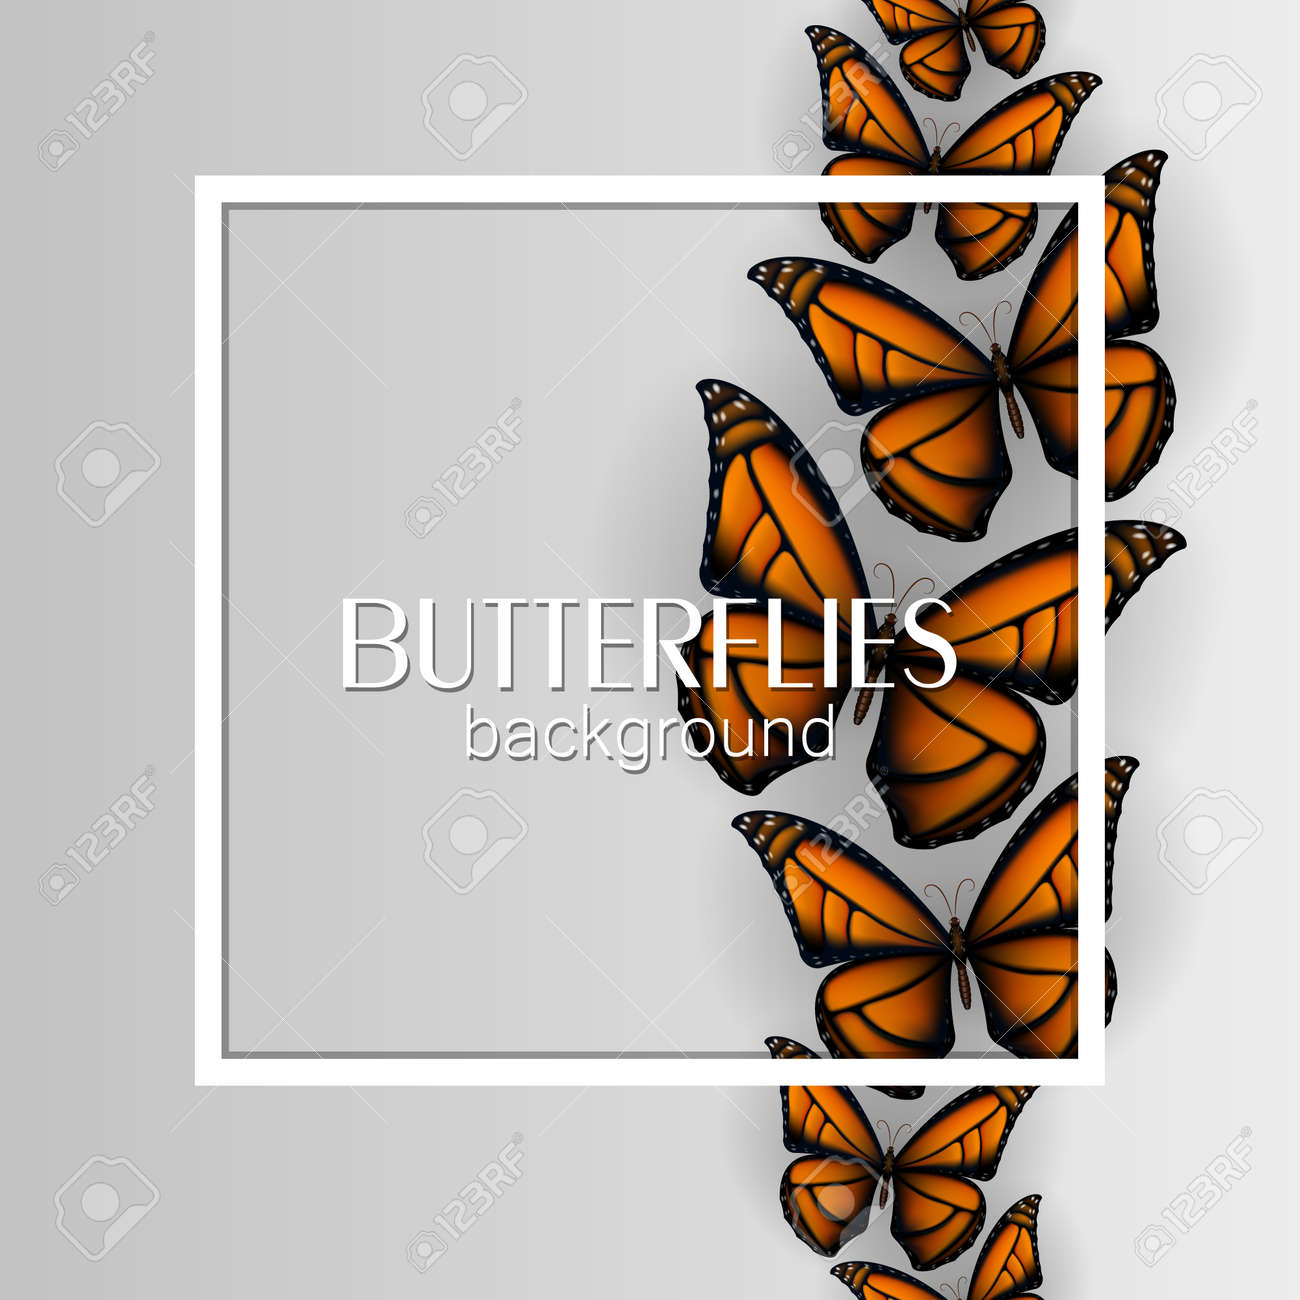 Square white frame banner with colorful butterflies light background - 105090852